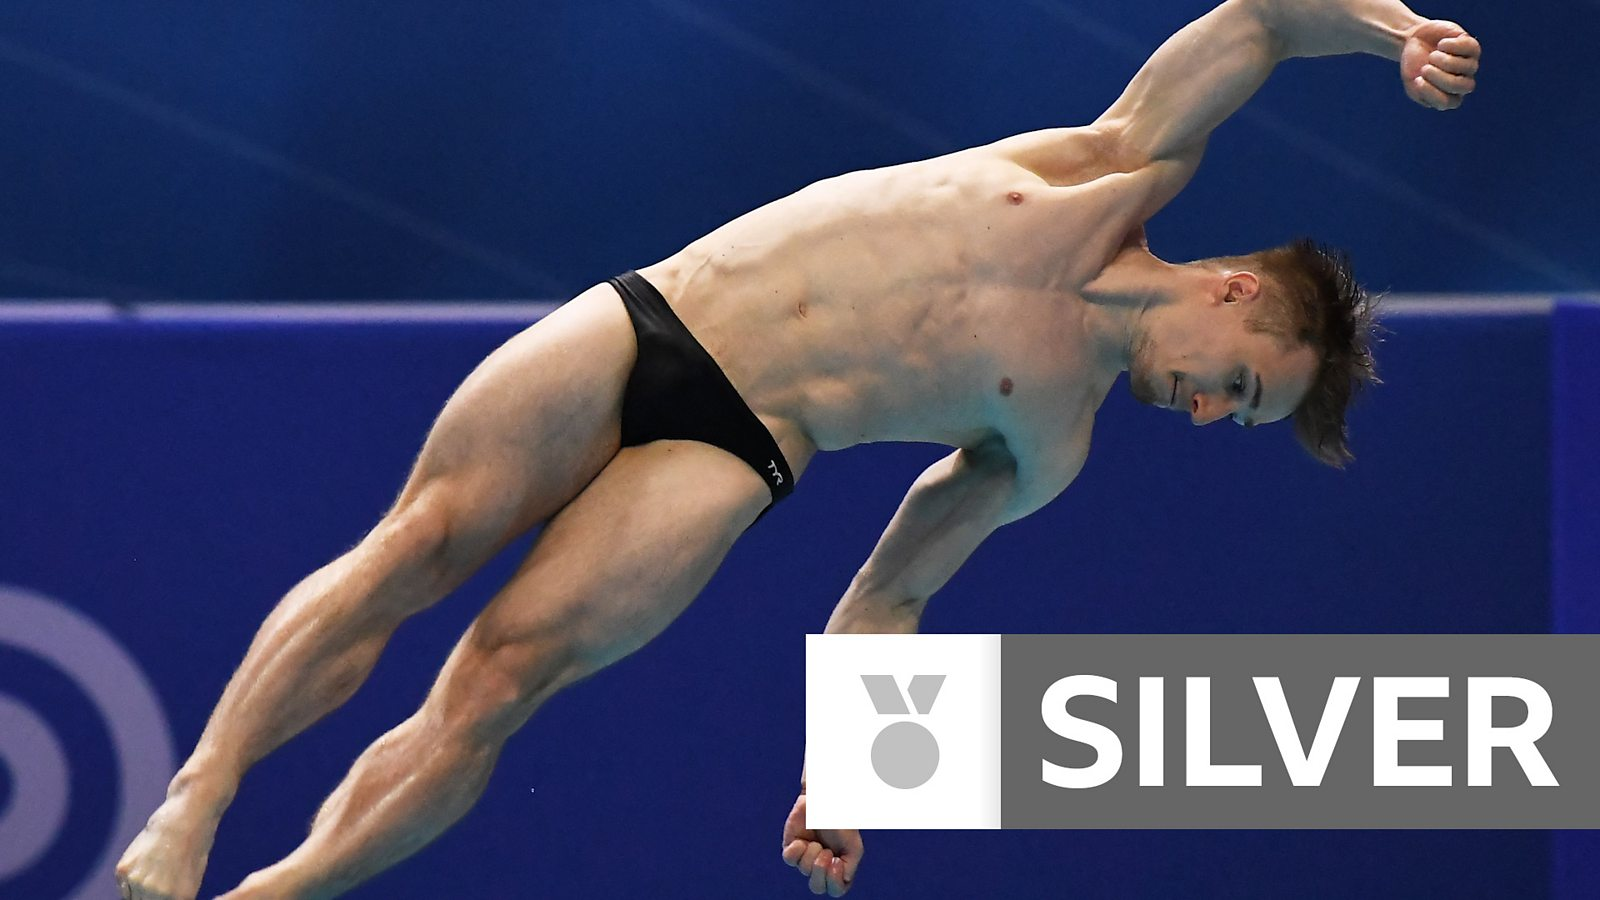 Watch: GB's Laugher wins silver with last dive